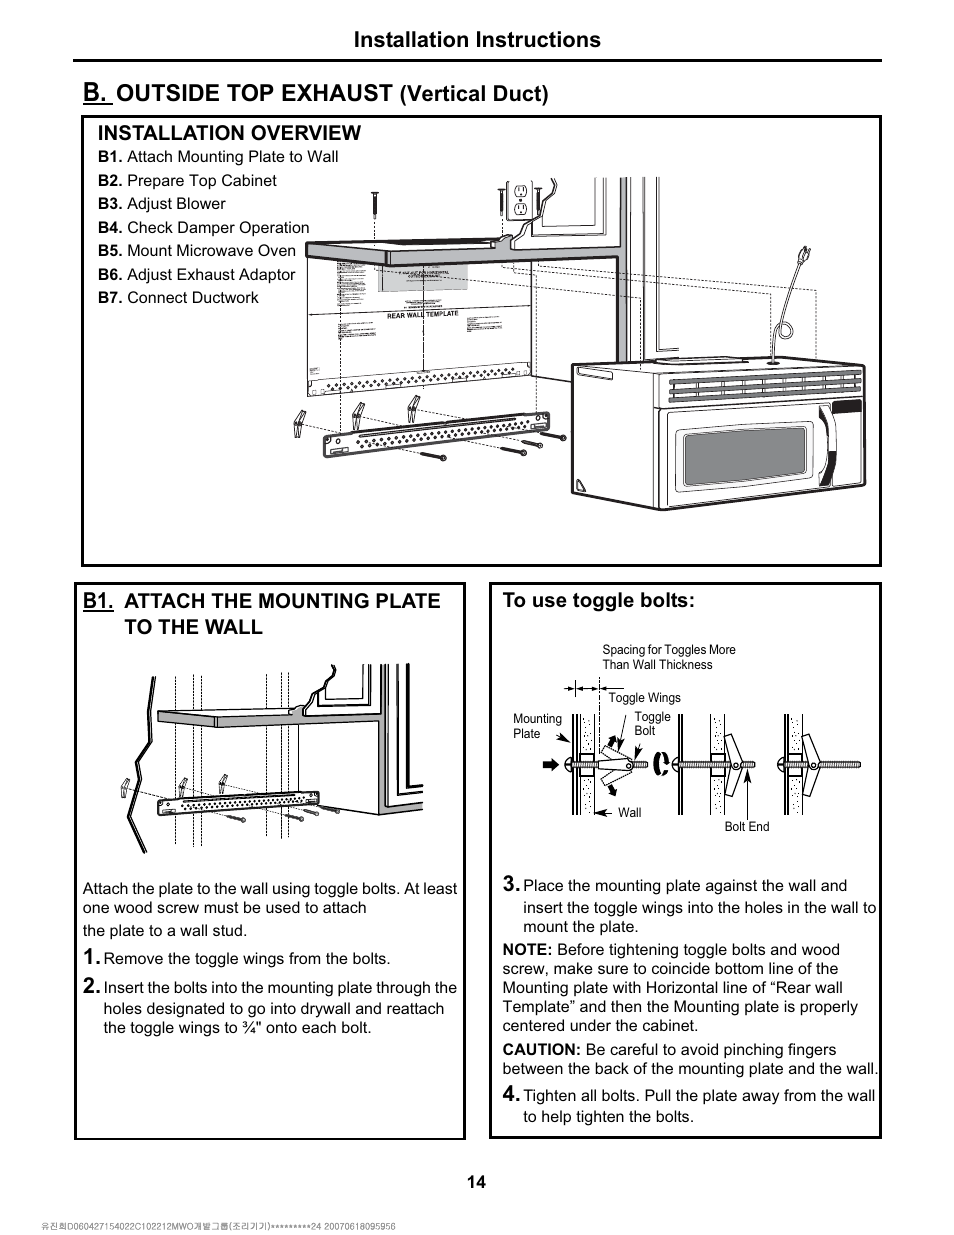 Installation of microwaves over the range - 22 Hotpoint Microwave Oven Rvm5160dhbb Installation Instructions Download Free Over The Range